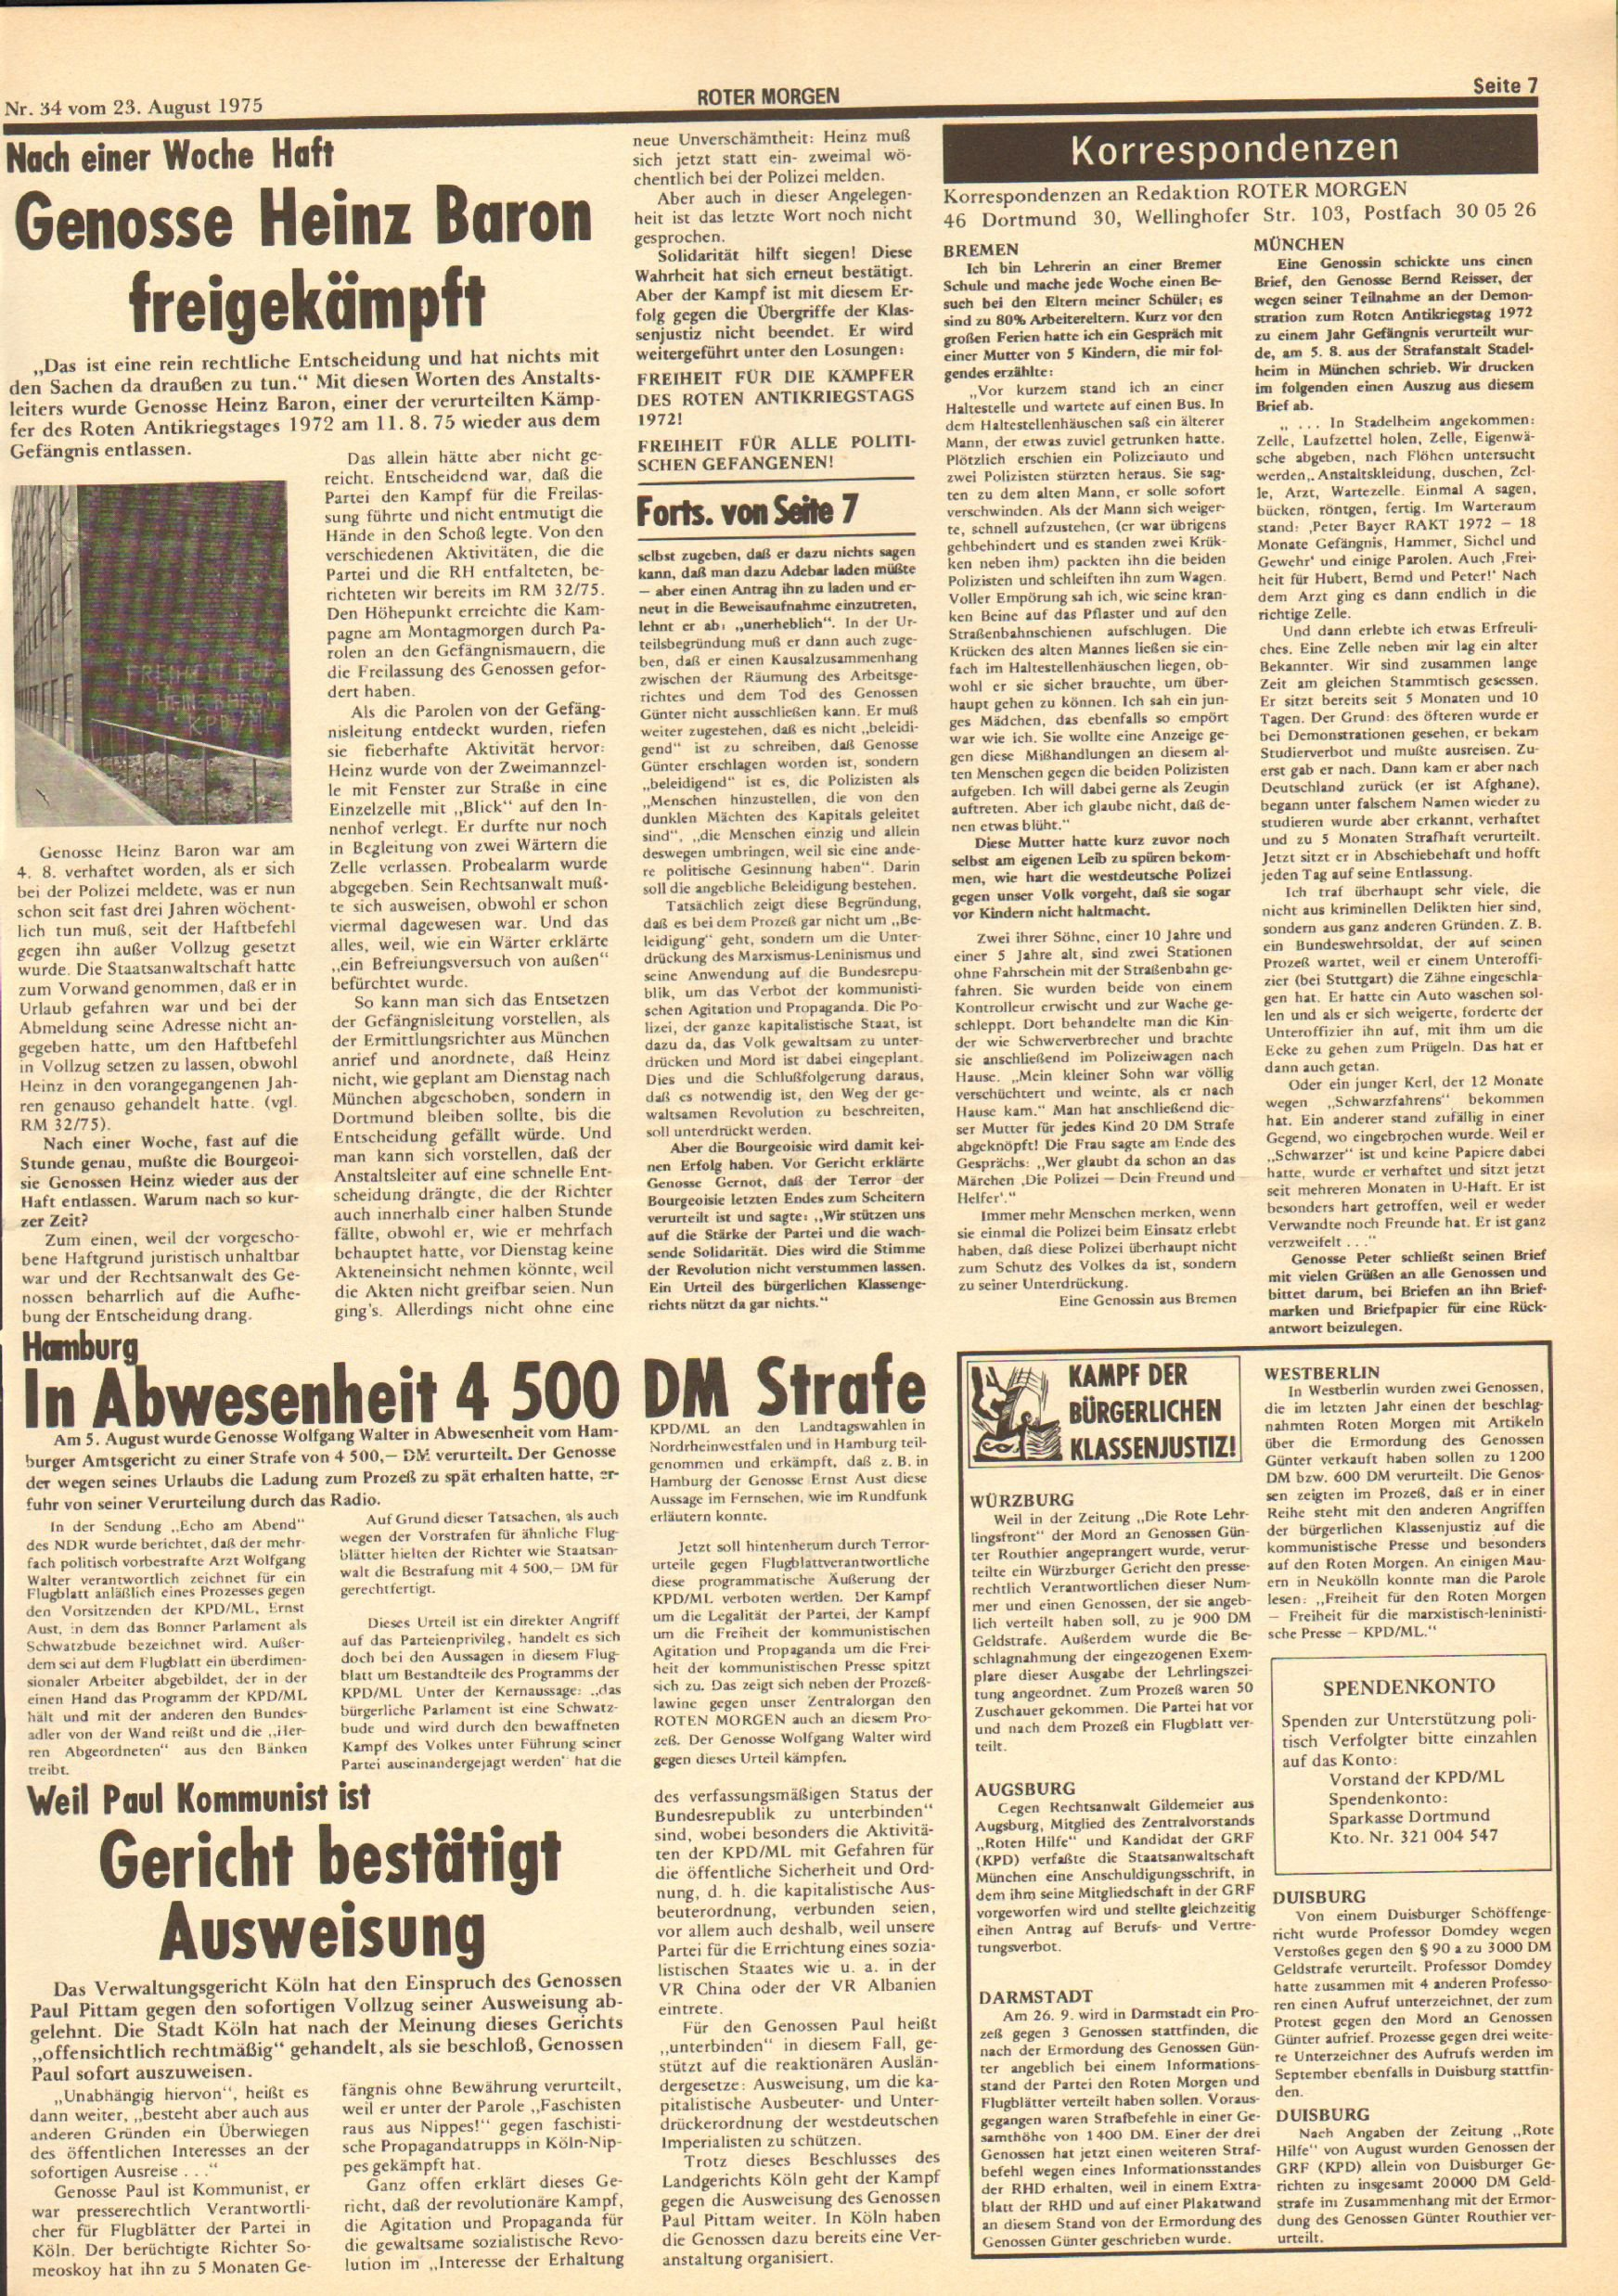 Roter Morgen, 9. Jg., 23. August 1975, Nr. 34, Seite 7